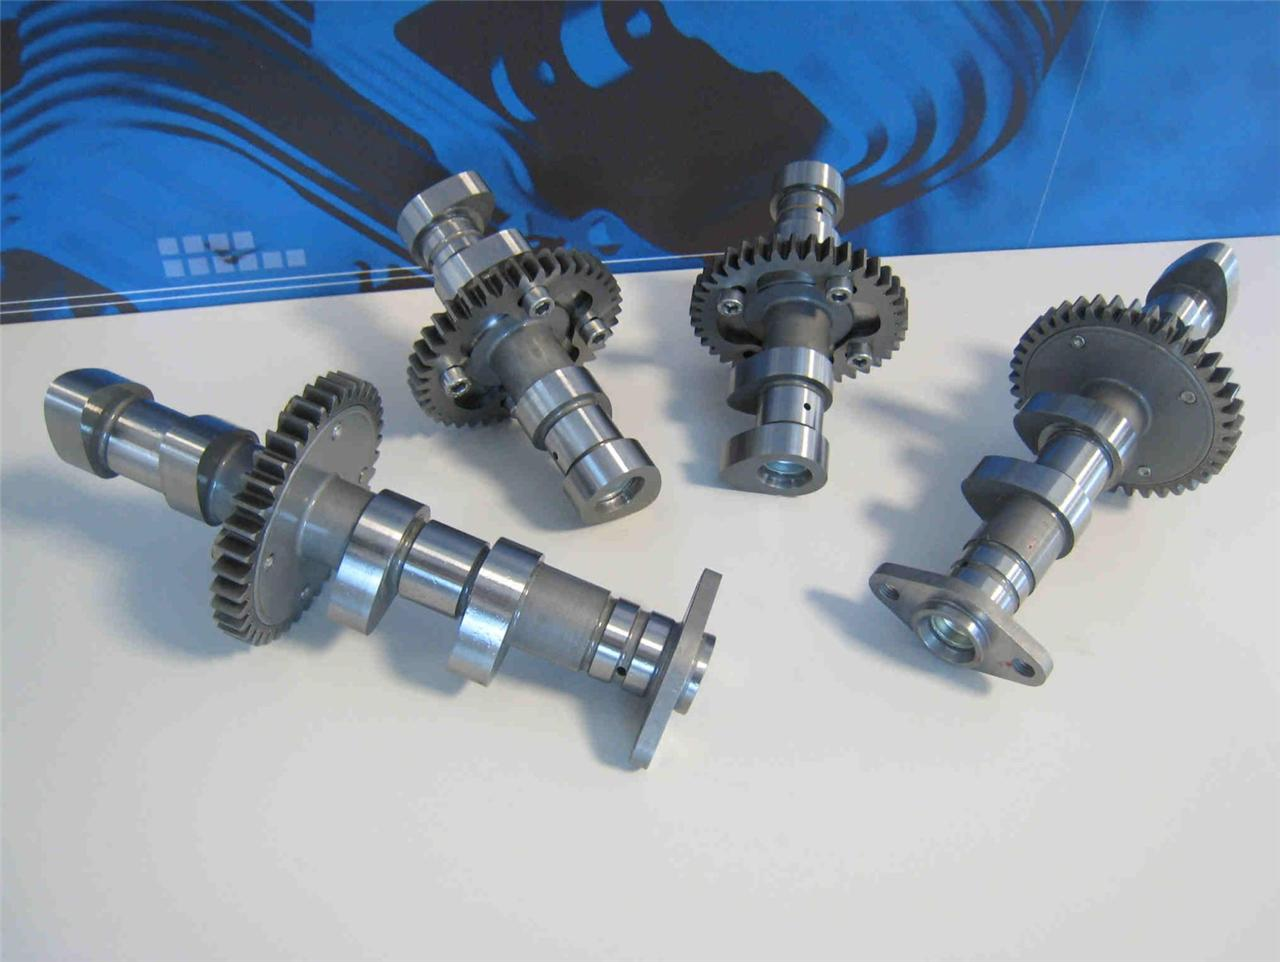 Harley Davidson Flywheels additionally Connecting Rod Balancer Tool together with Crower Connecting Rods moreover Crankshaft Piston Connecting Rod together with Harley Davidson Twin Cam Connecting Rods. on camshaft connecting rod